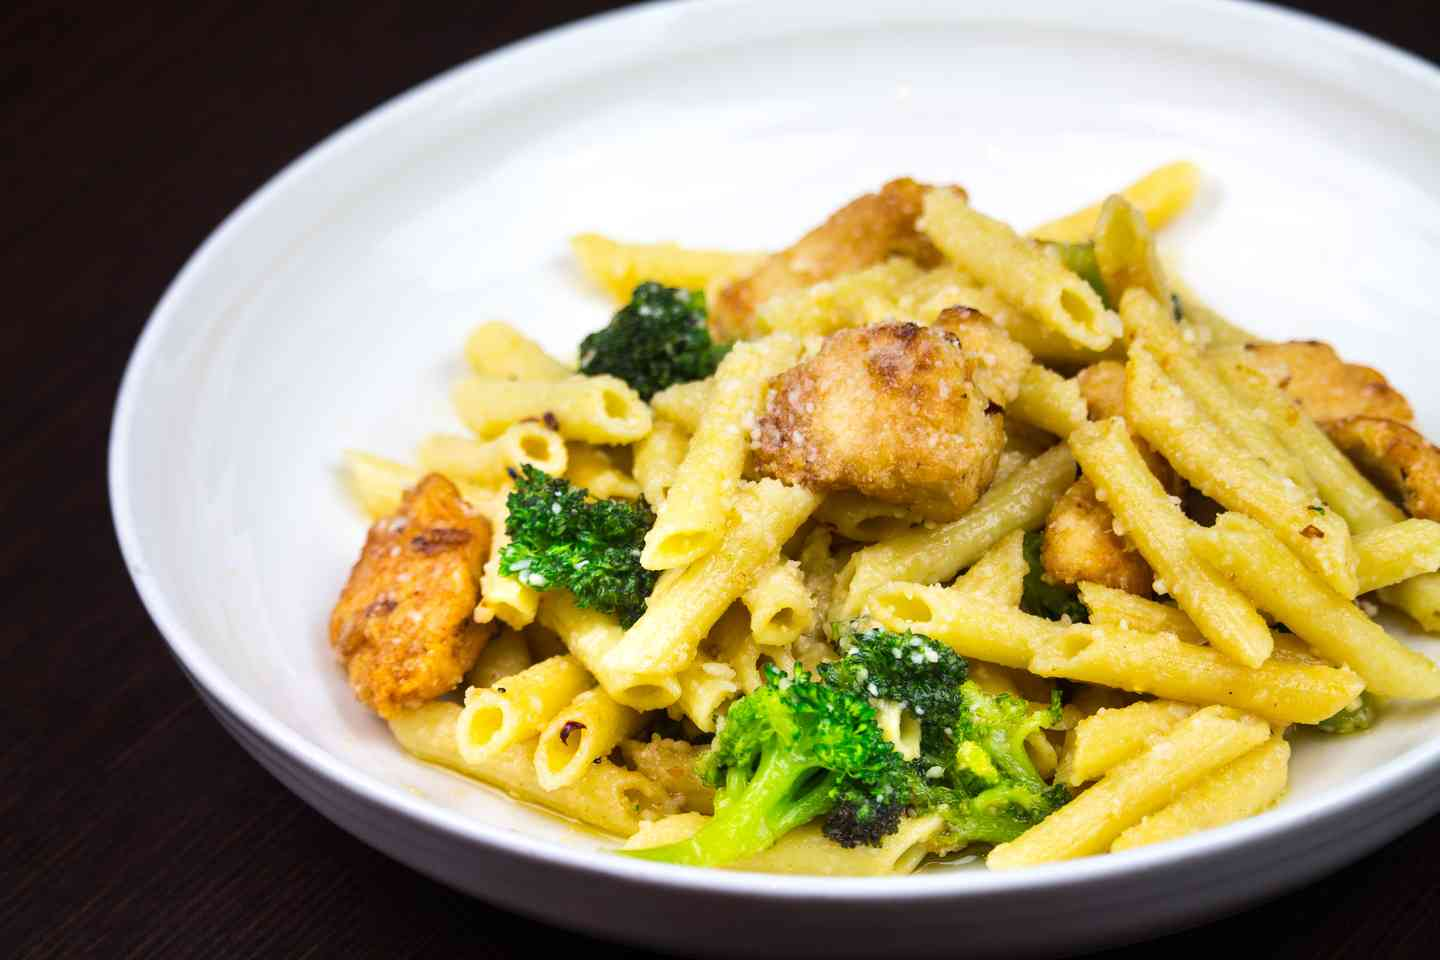 Chicken & Broccoli